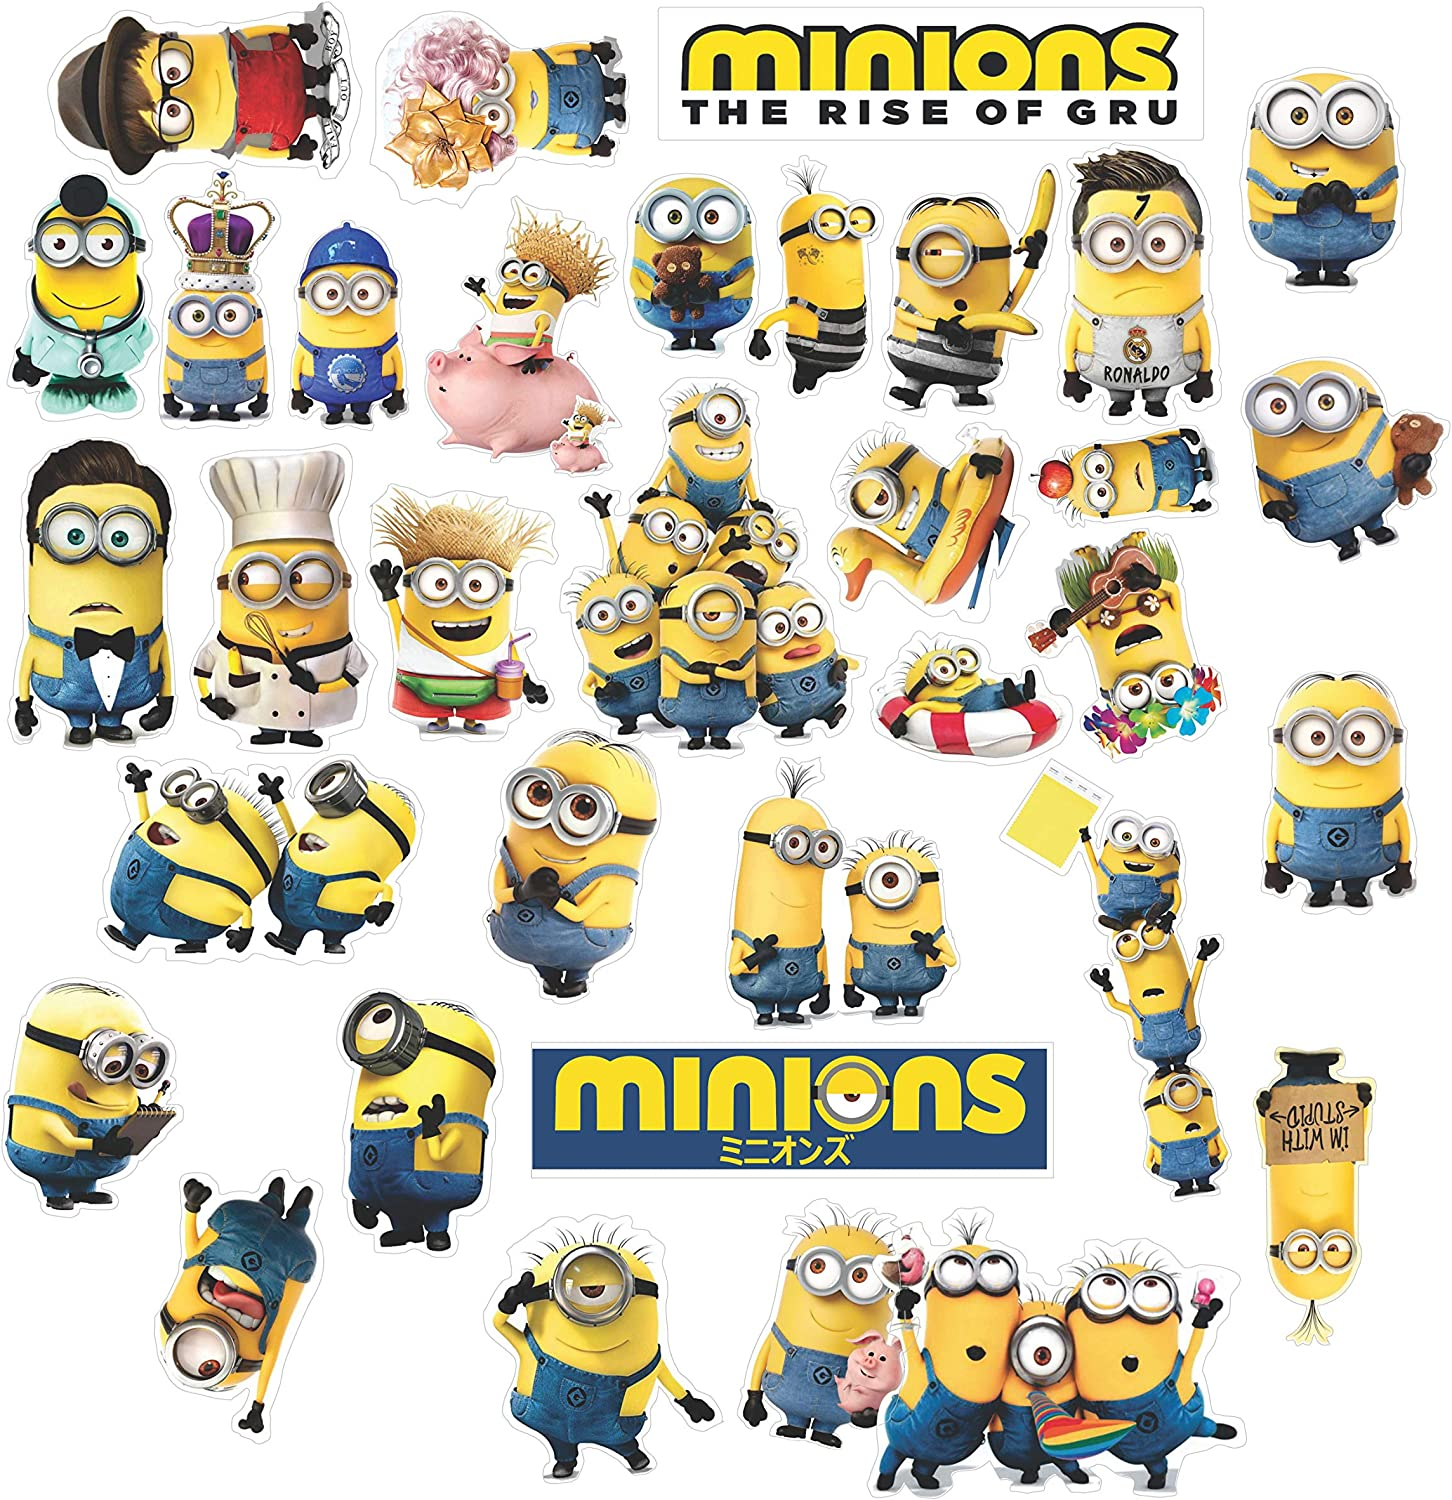 Minion Stickers, Waterproof Vinyl - 36 Pack of Peel and Stick Minions Stickers Wall Decal for Cute Birthday Party, Gift Bag, Birthday Card, Decorating Hydro Flask, Laptop, Phone Case Car. By HK Studio